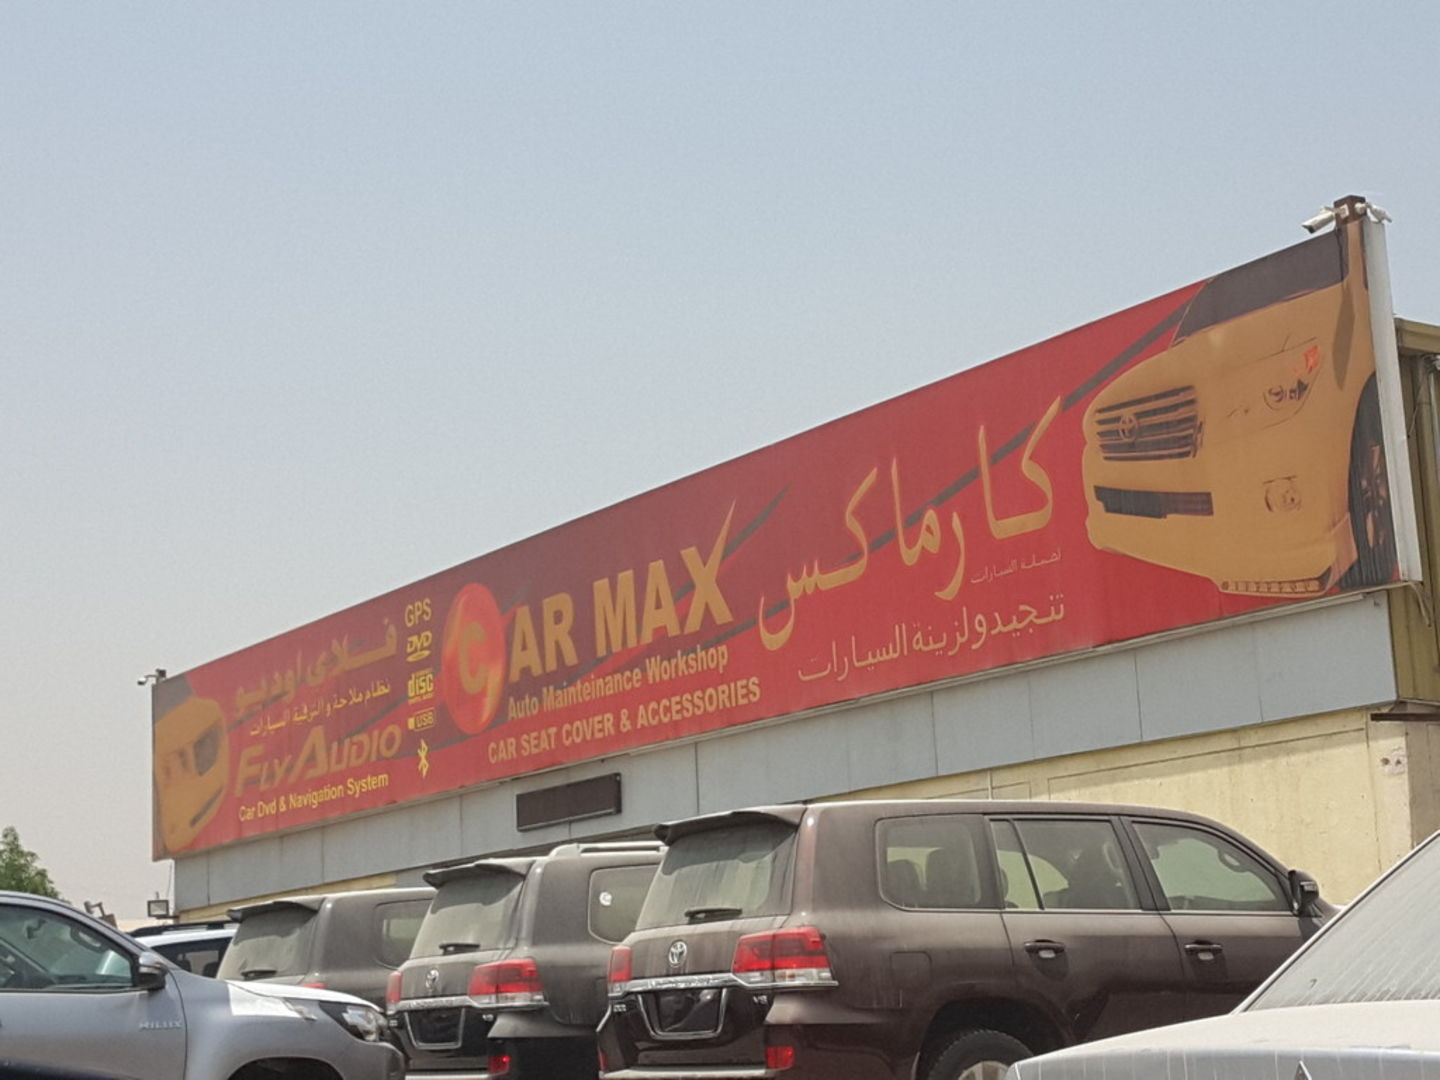 Walif-business-car-max-auto-accessories